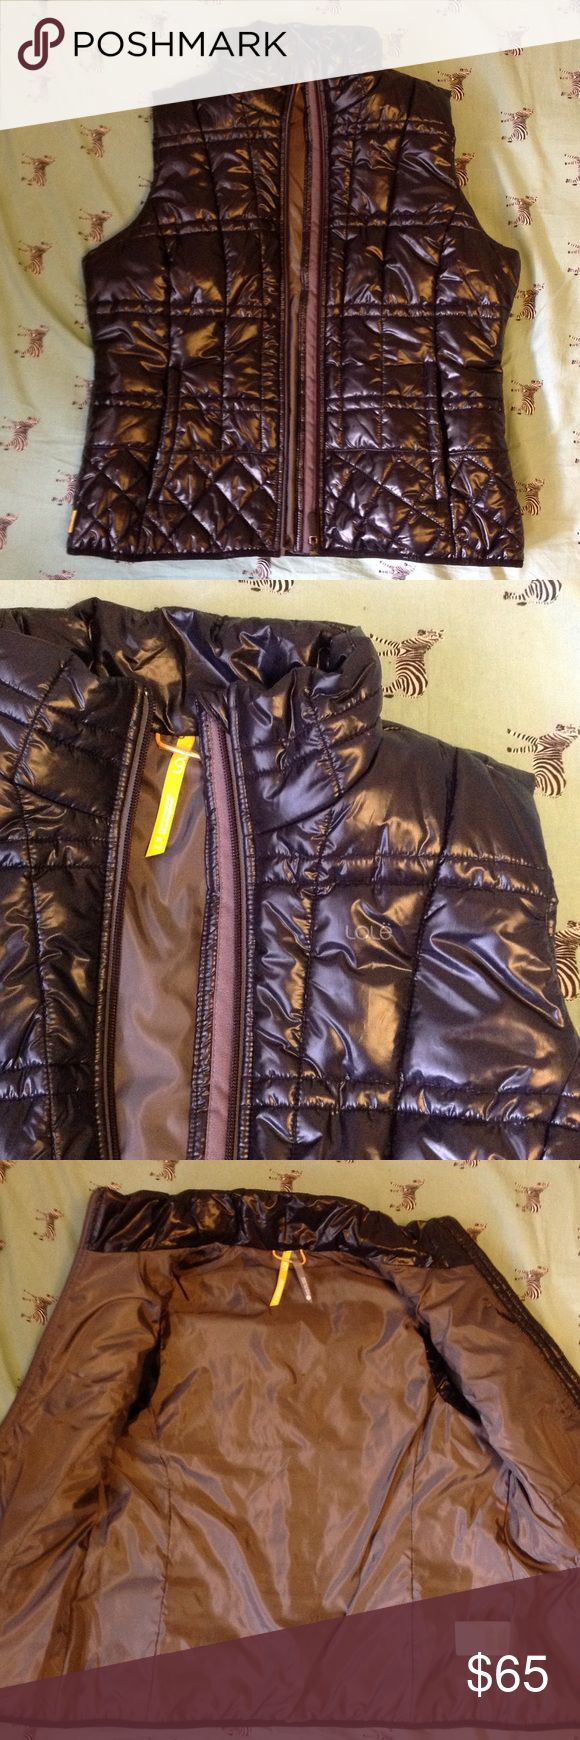 Lole down vest Perfect condition! Worn maybe twice? Has hand pockets and a hidden interior pocket! Lole Jackets & Coats Vests